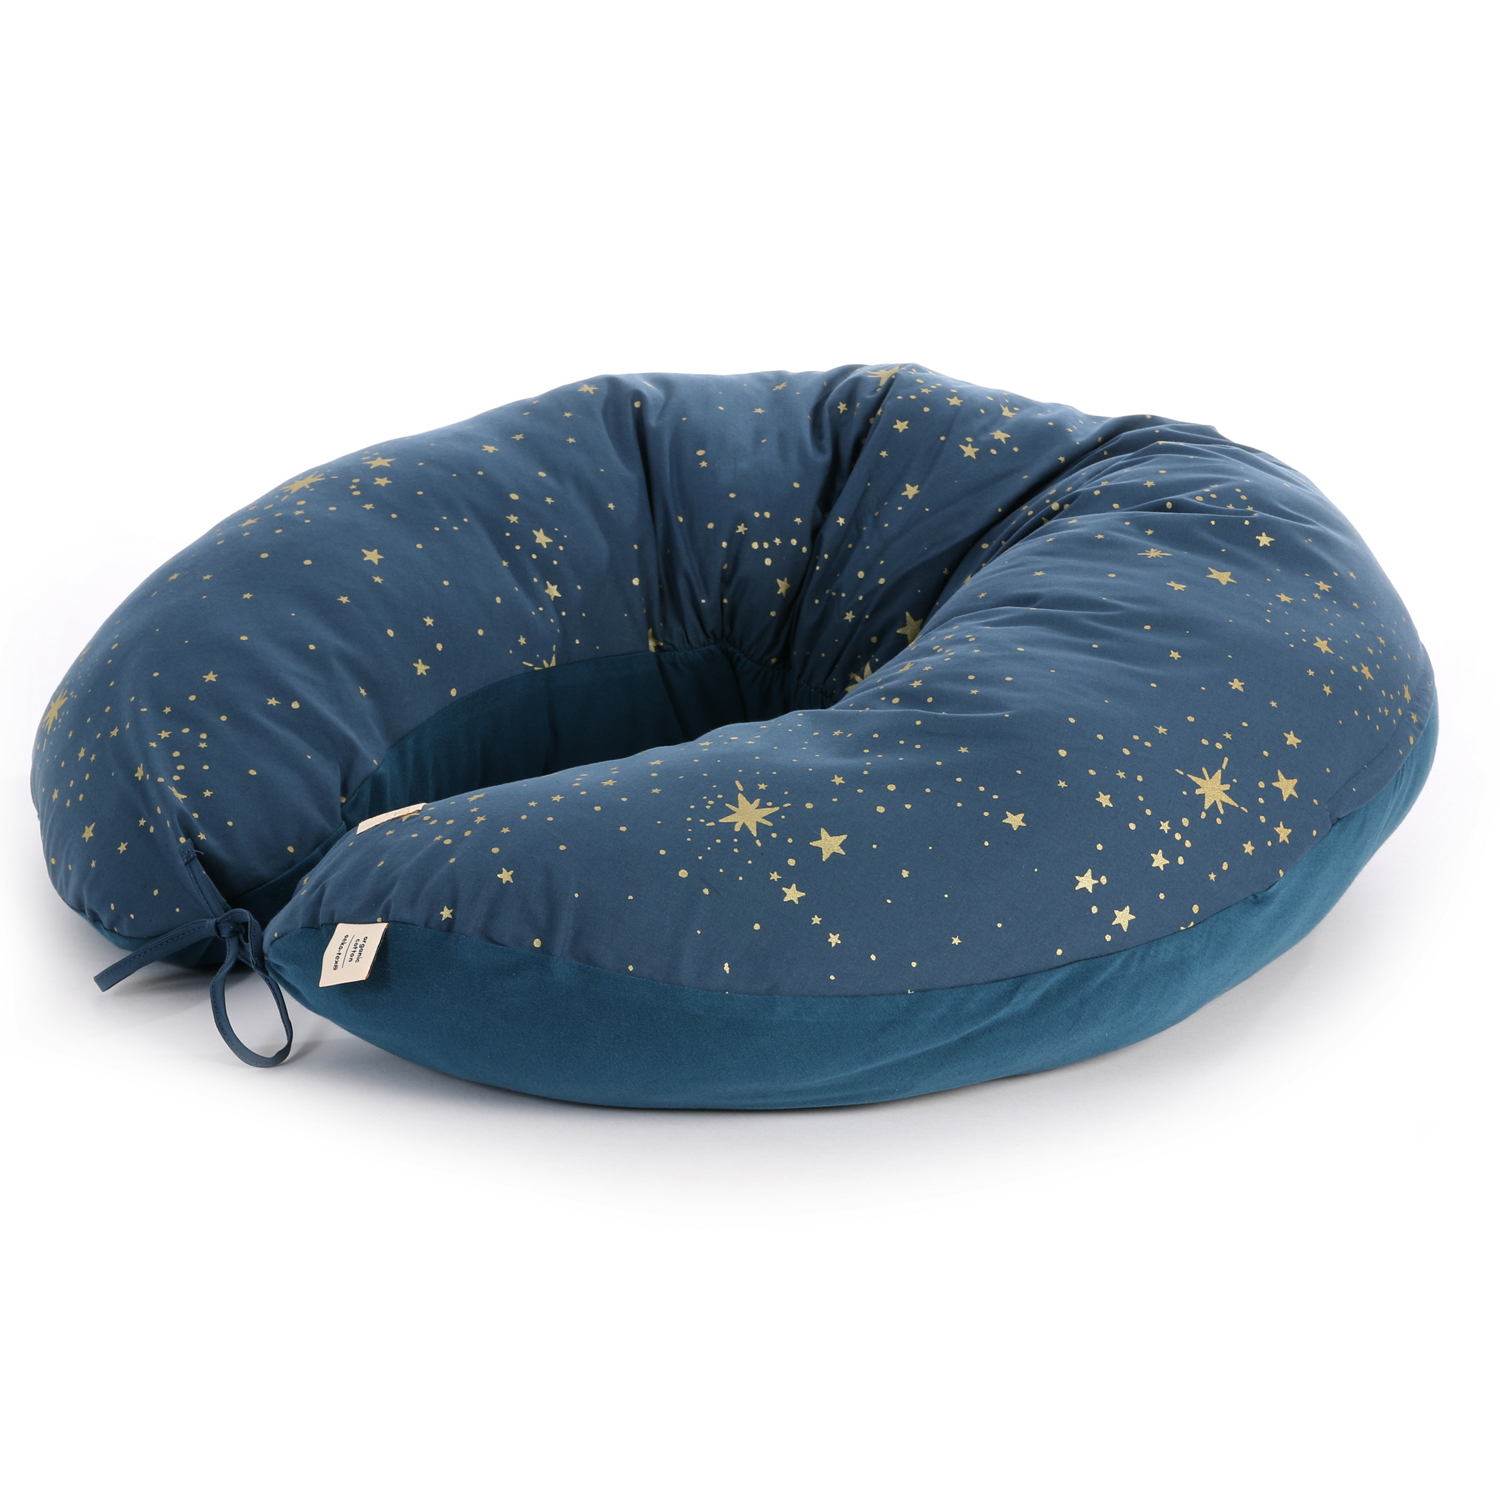 Luna maternity pillow Gold stella/ night blue